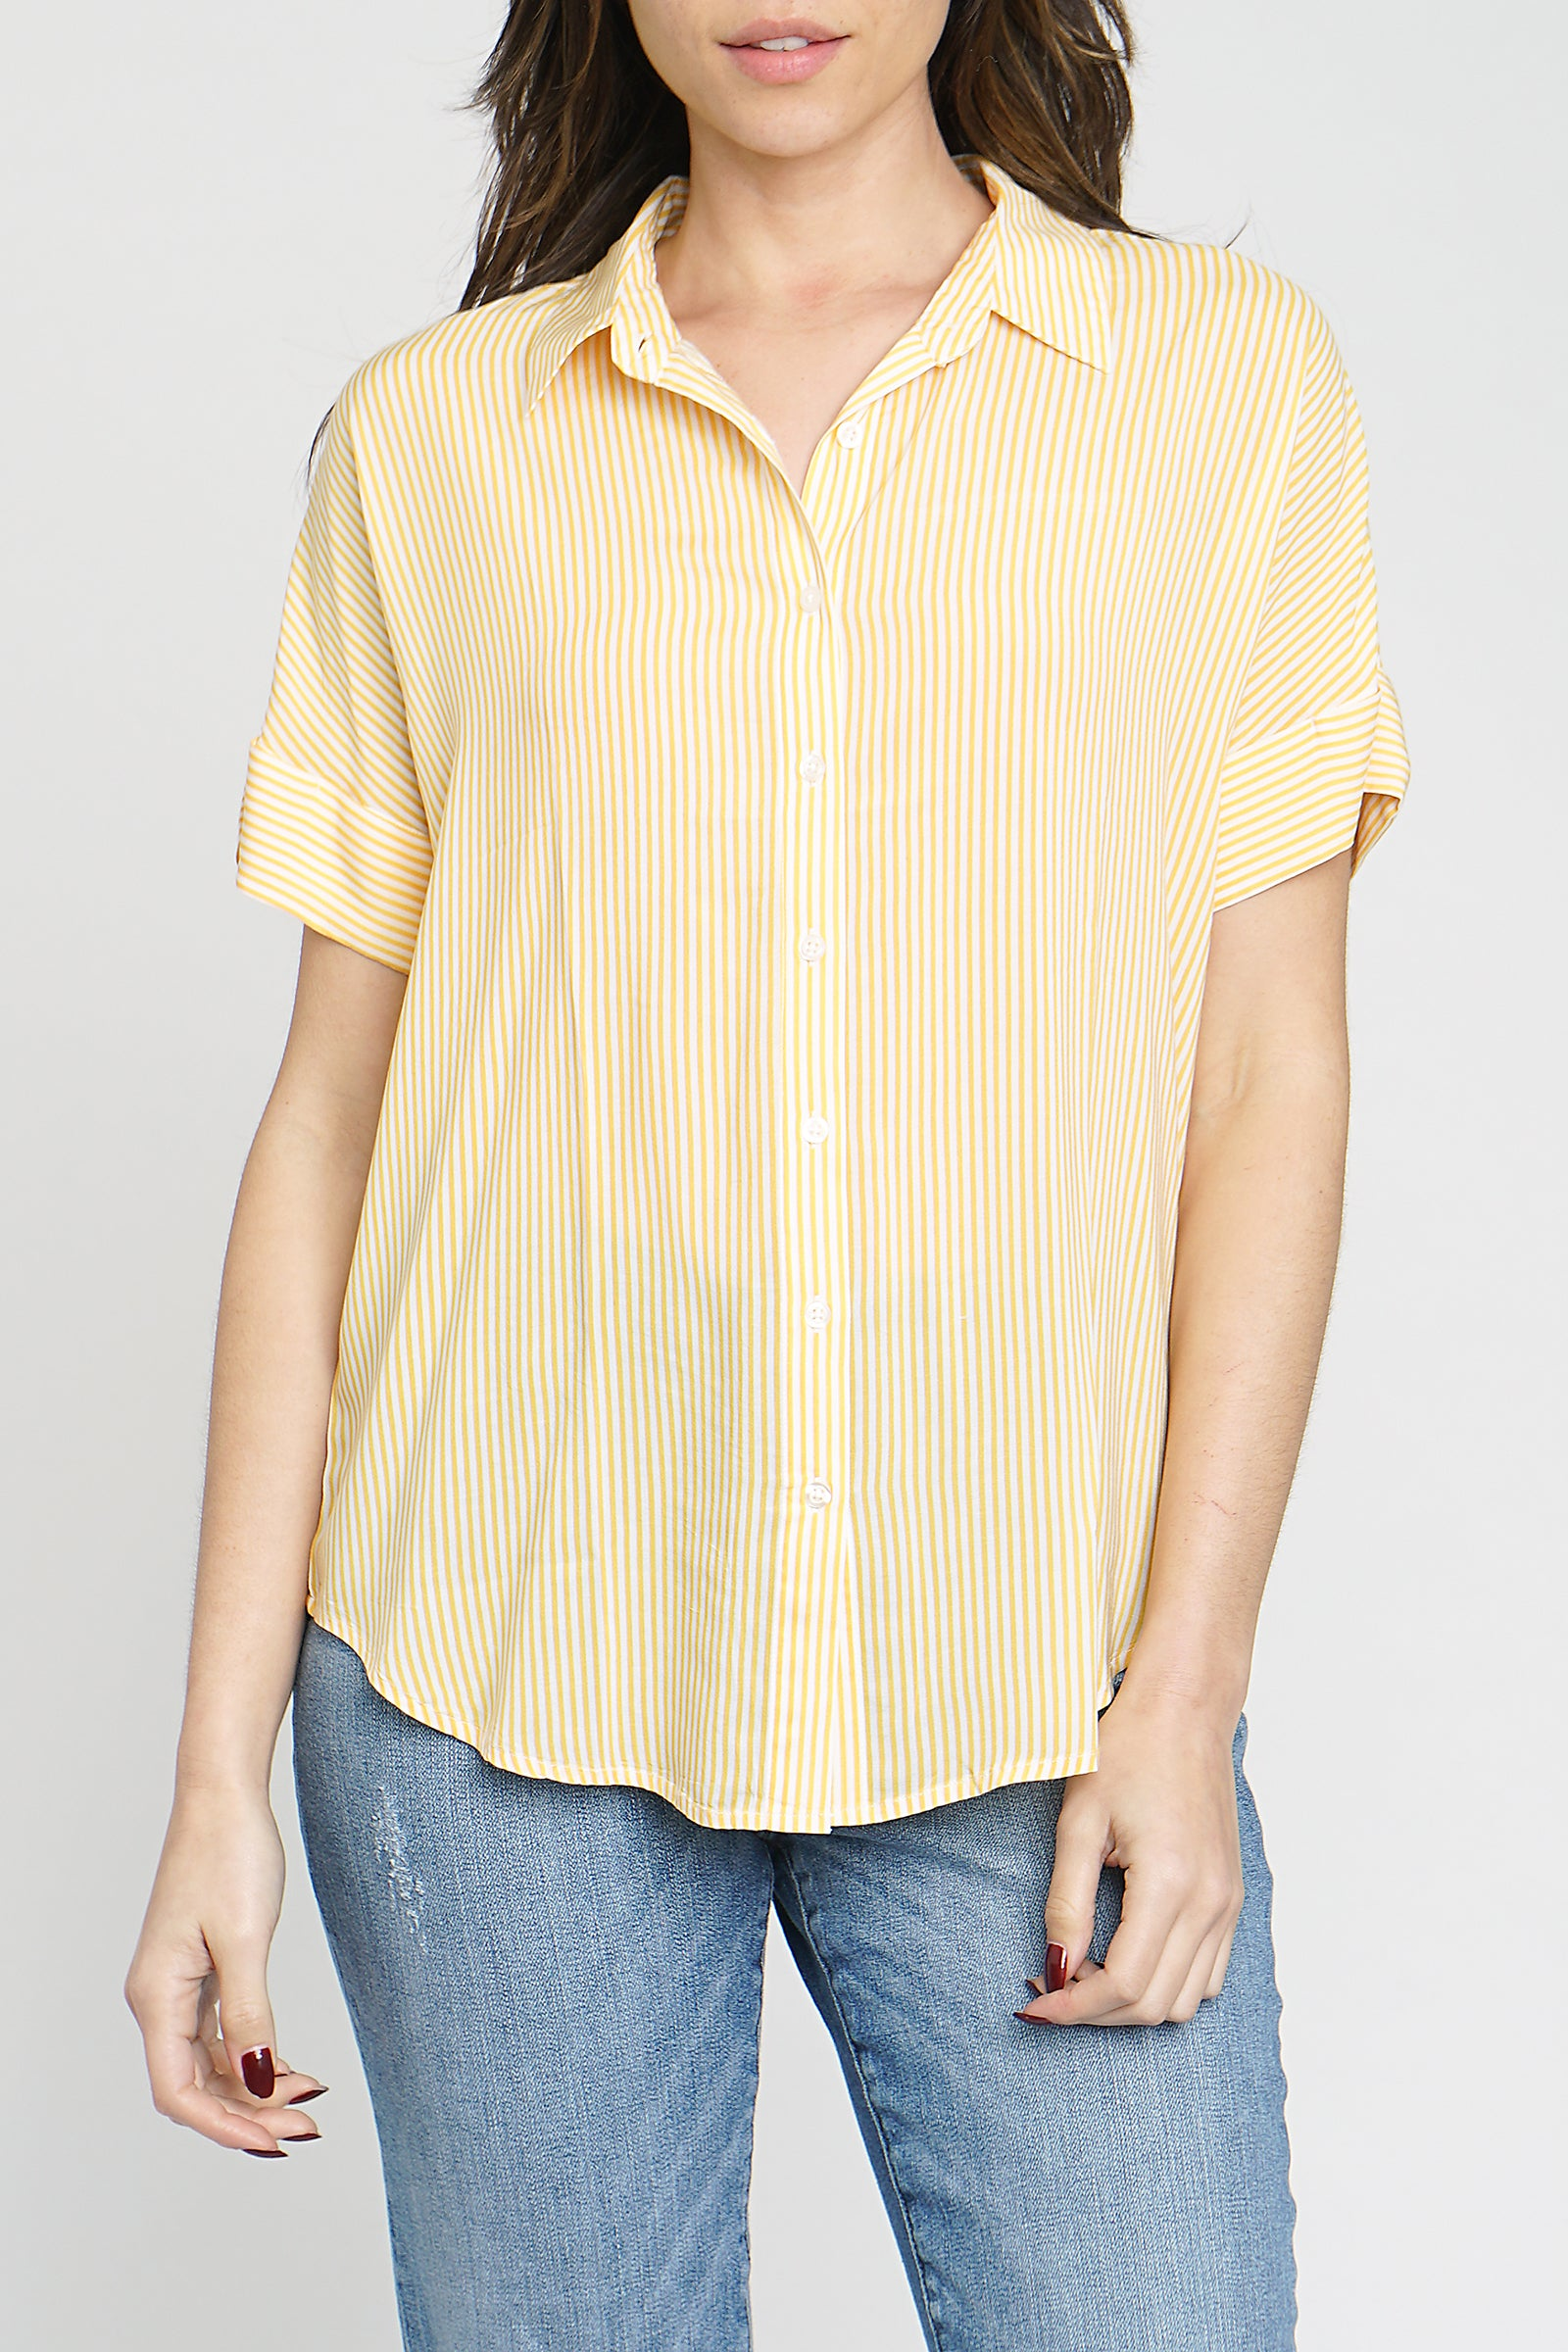 Avery Short Sleeve Button Up Shirt - 1965 Sunshine Stripe